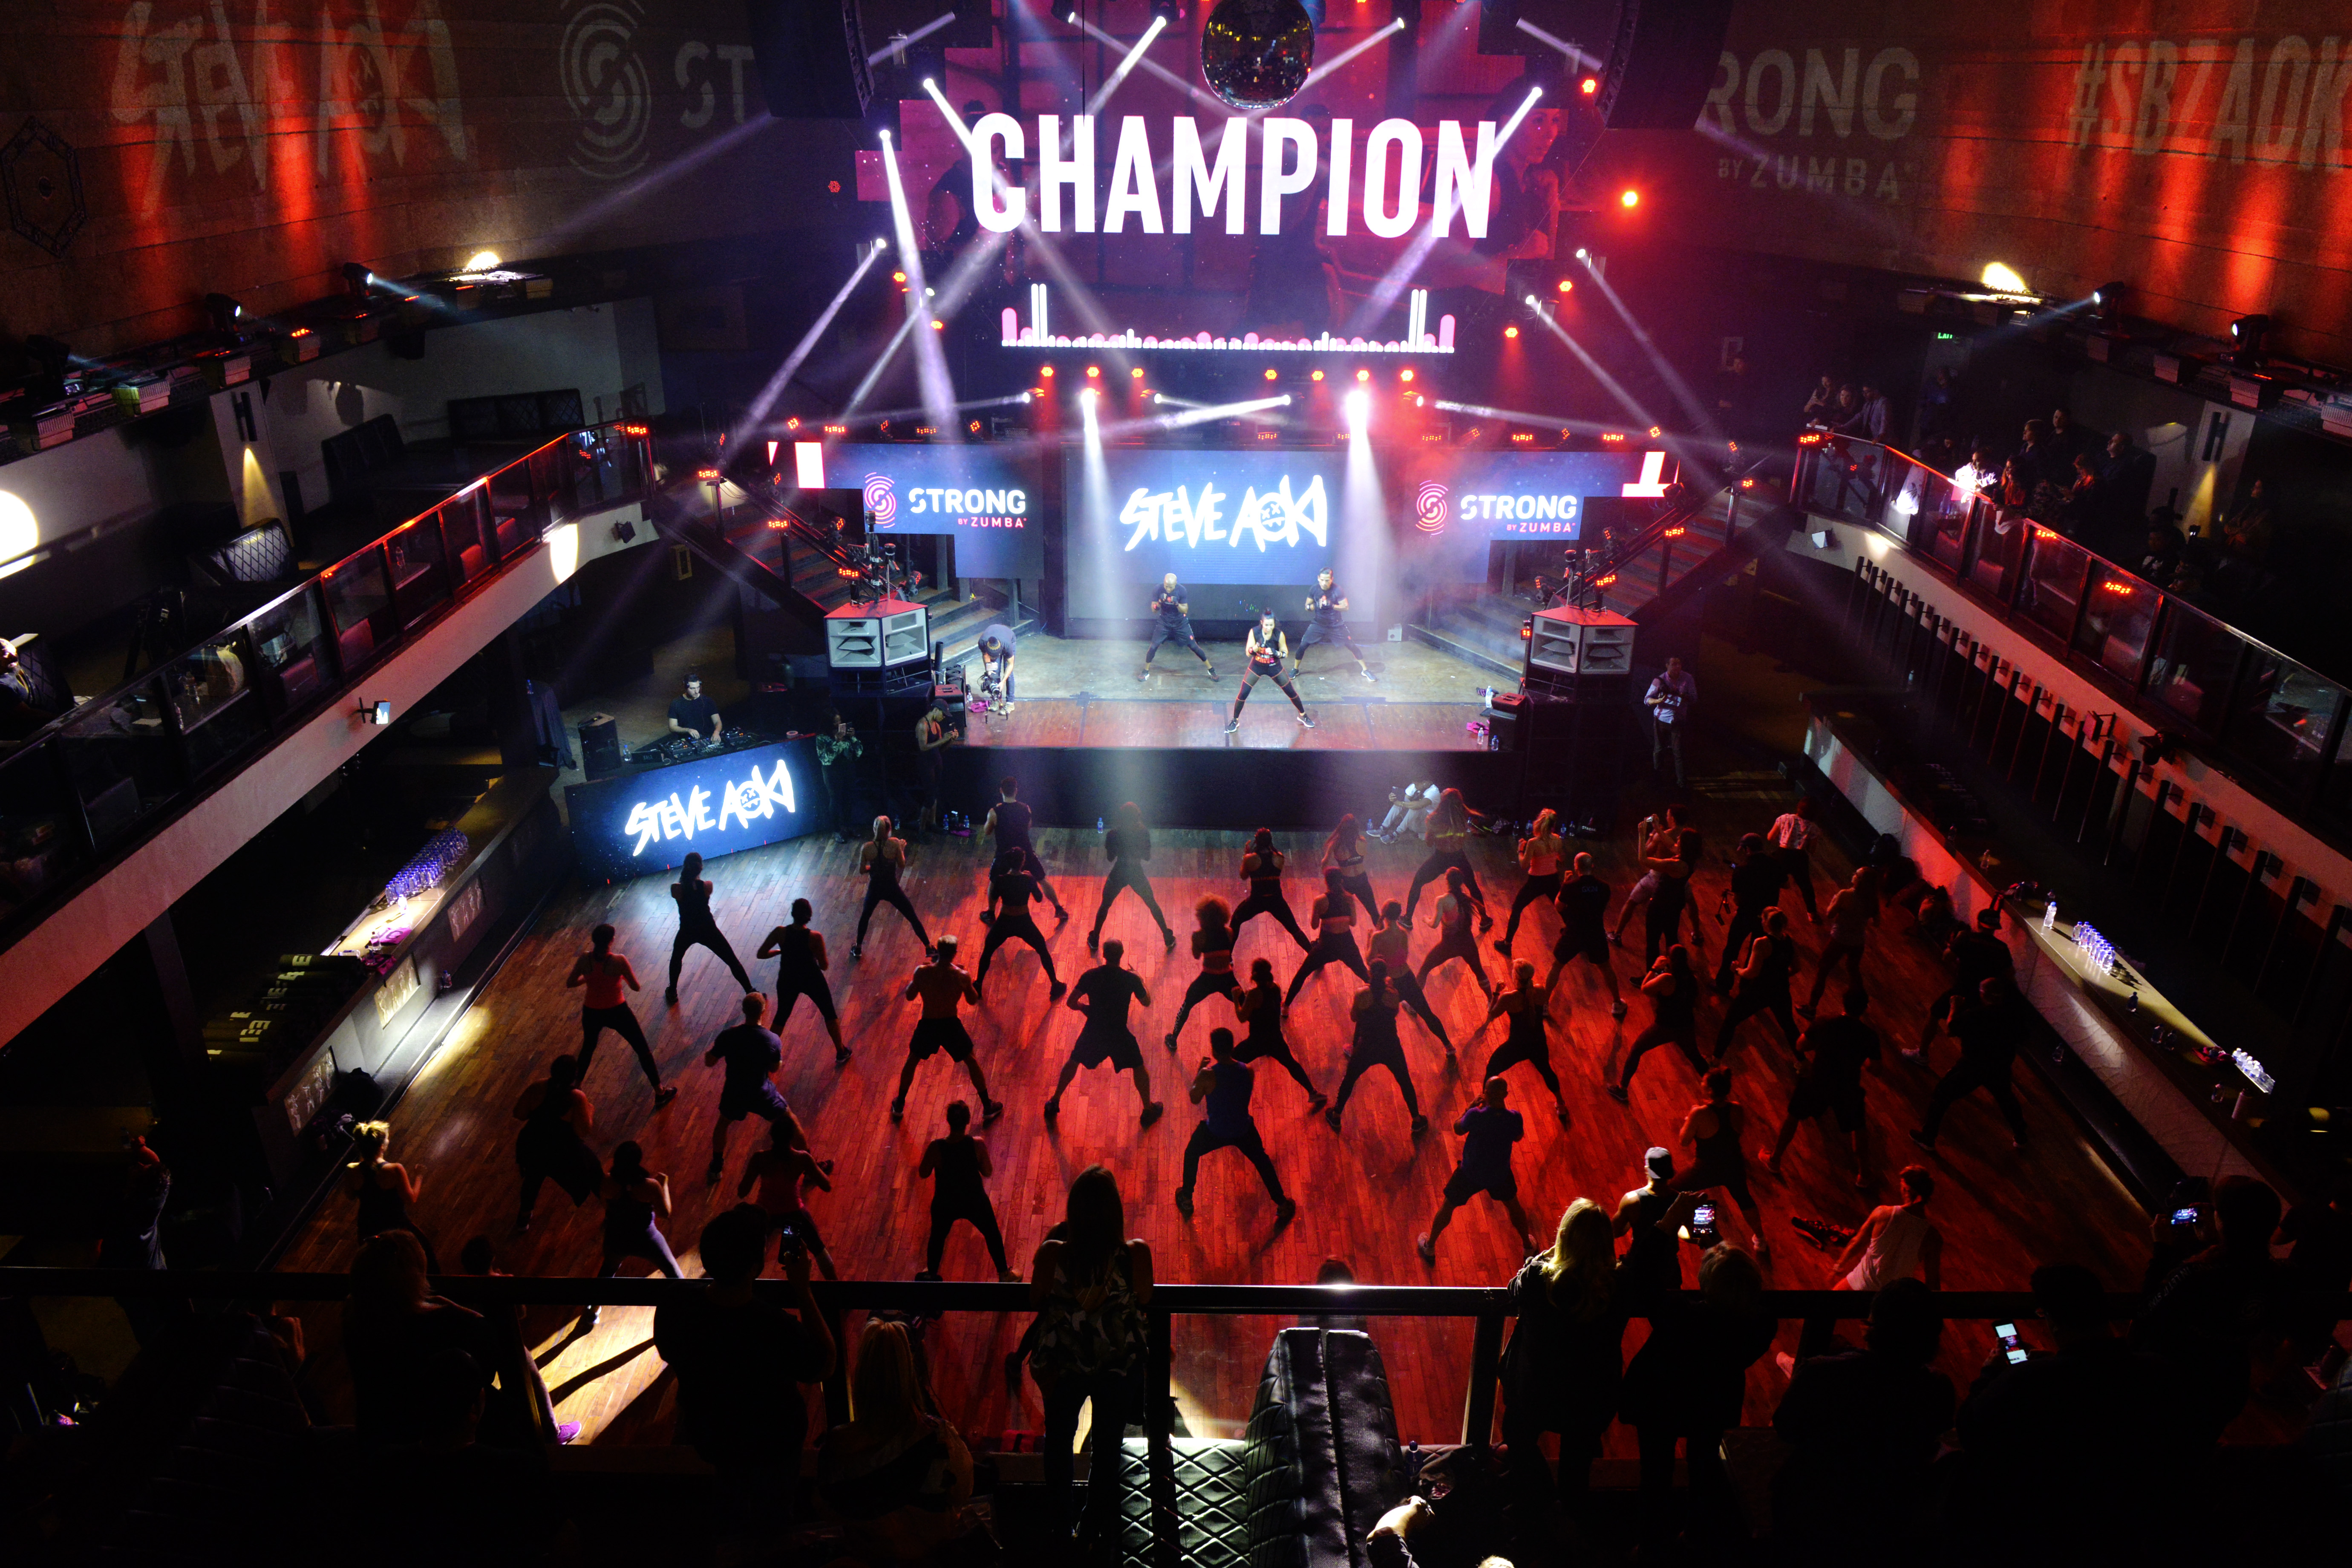 Attendees completing the STRONG by Zumba routine set to Steve Aoki's 'Champion' | October 4, 2017